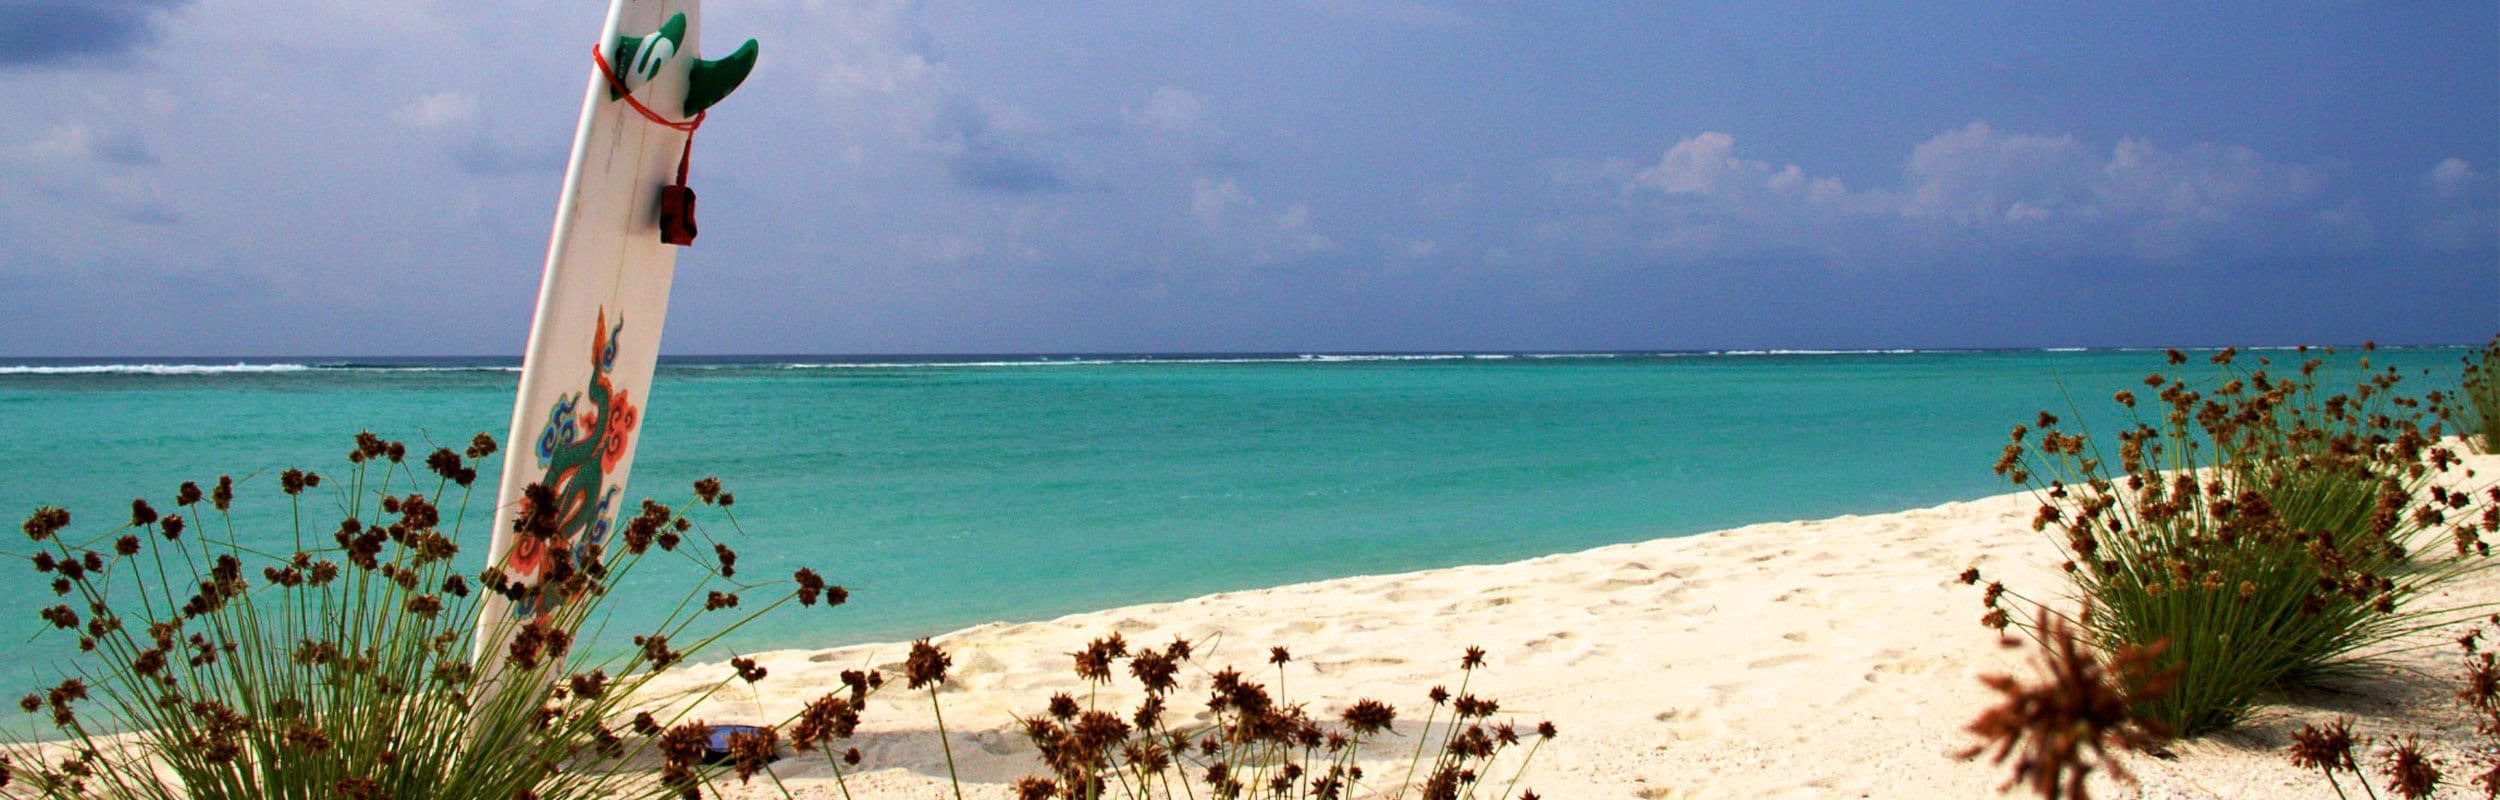 india-surf-tour-lakshadweep_4